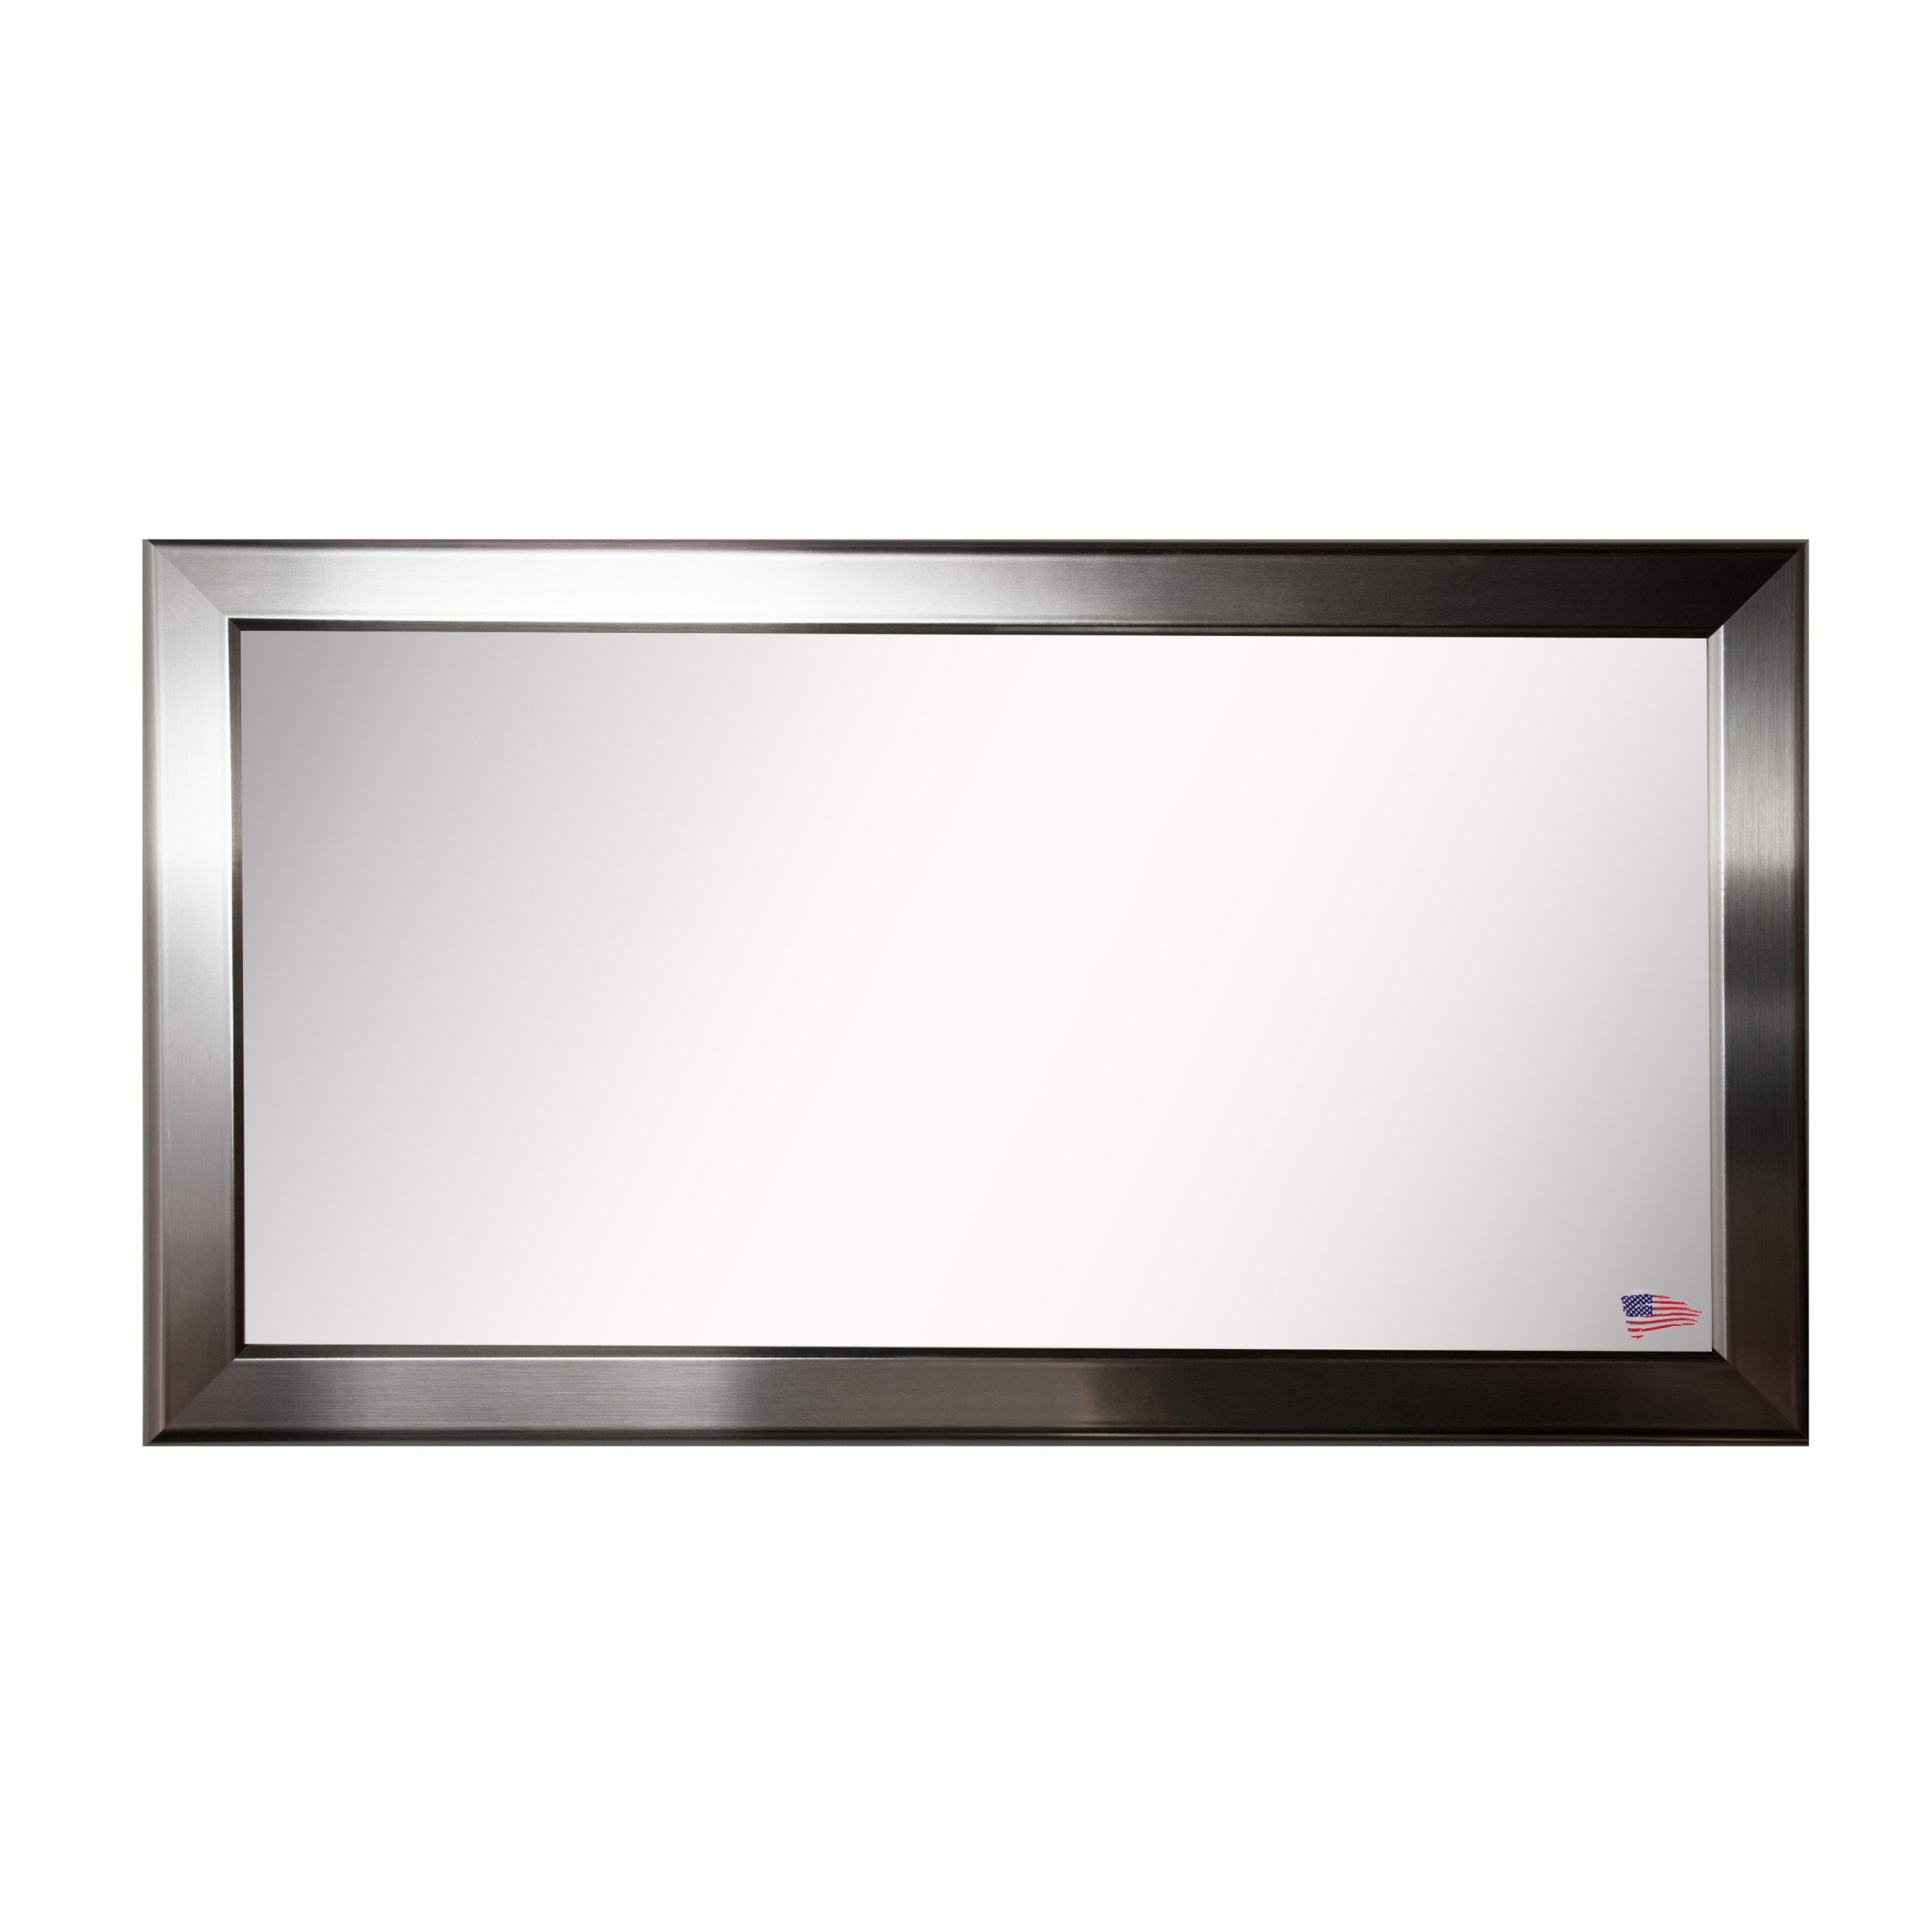 Rayne Mirrors Rounded Double Vanity Wall Mirror Pertaining To Vertical Round Wall Mirrors (Image 15 of 20)